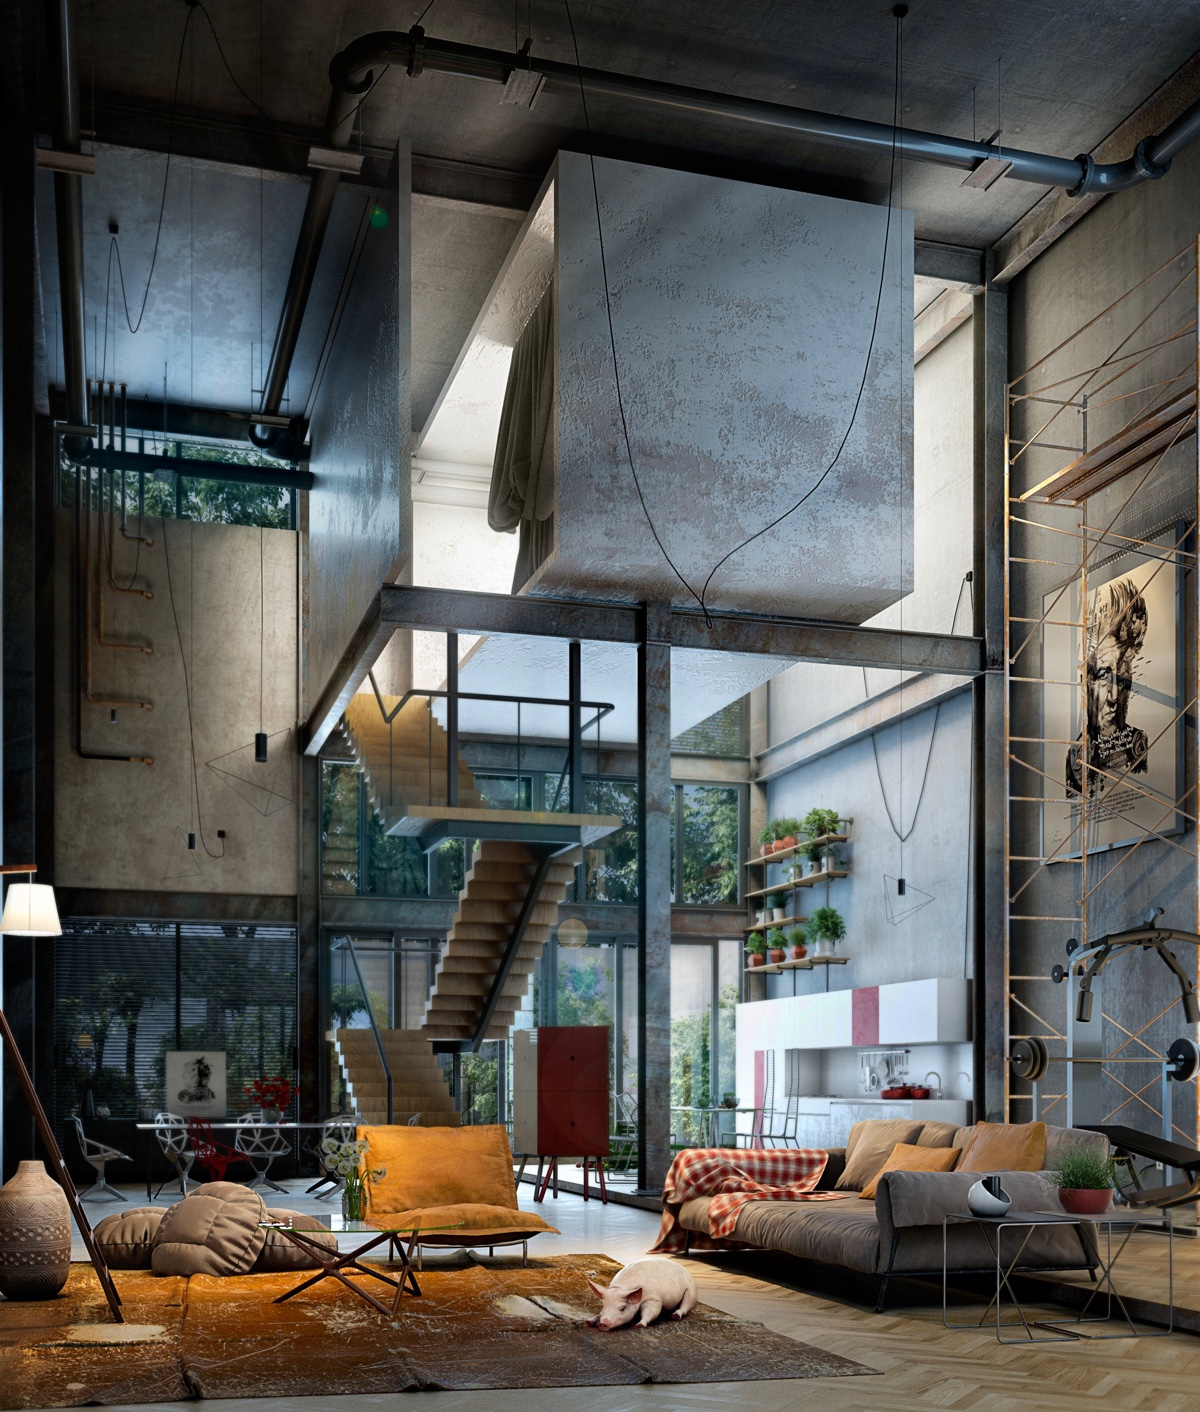 40 incredible lofts that push boundaries for Design your home online with room visualizer